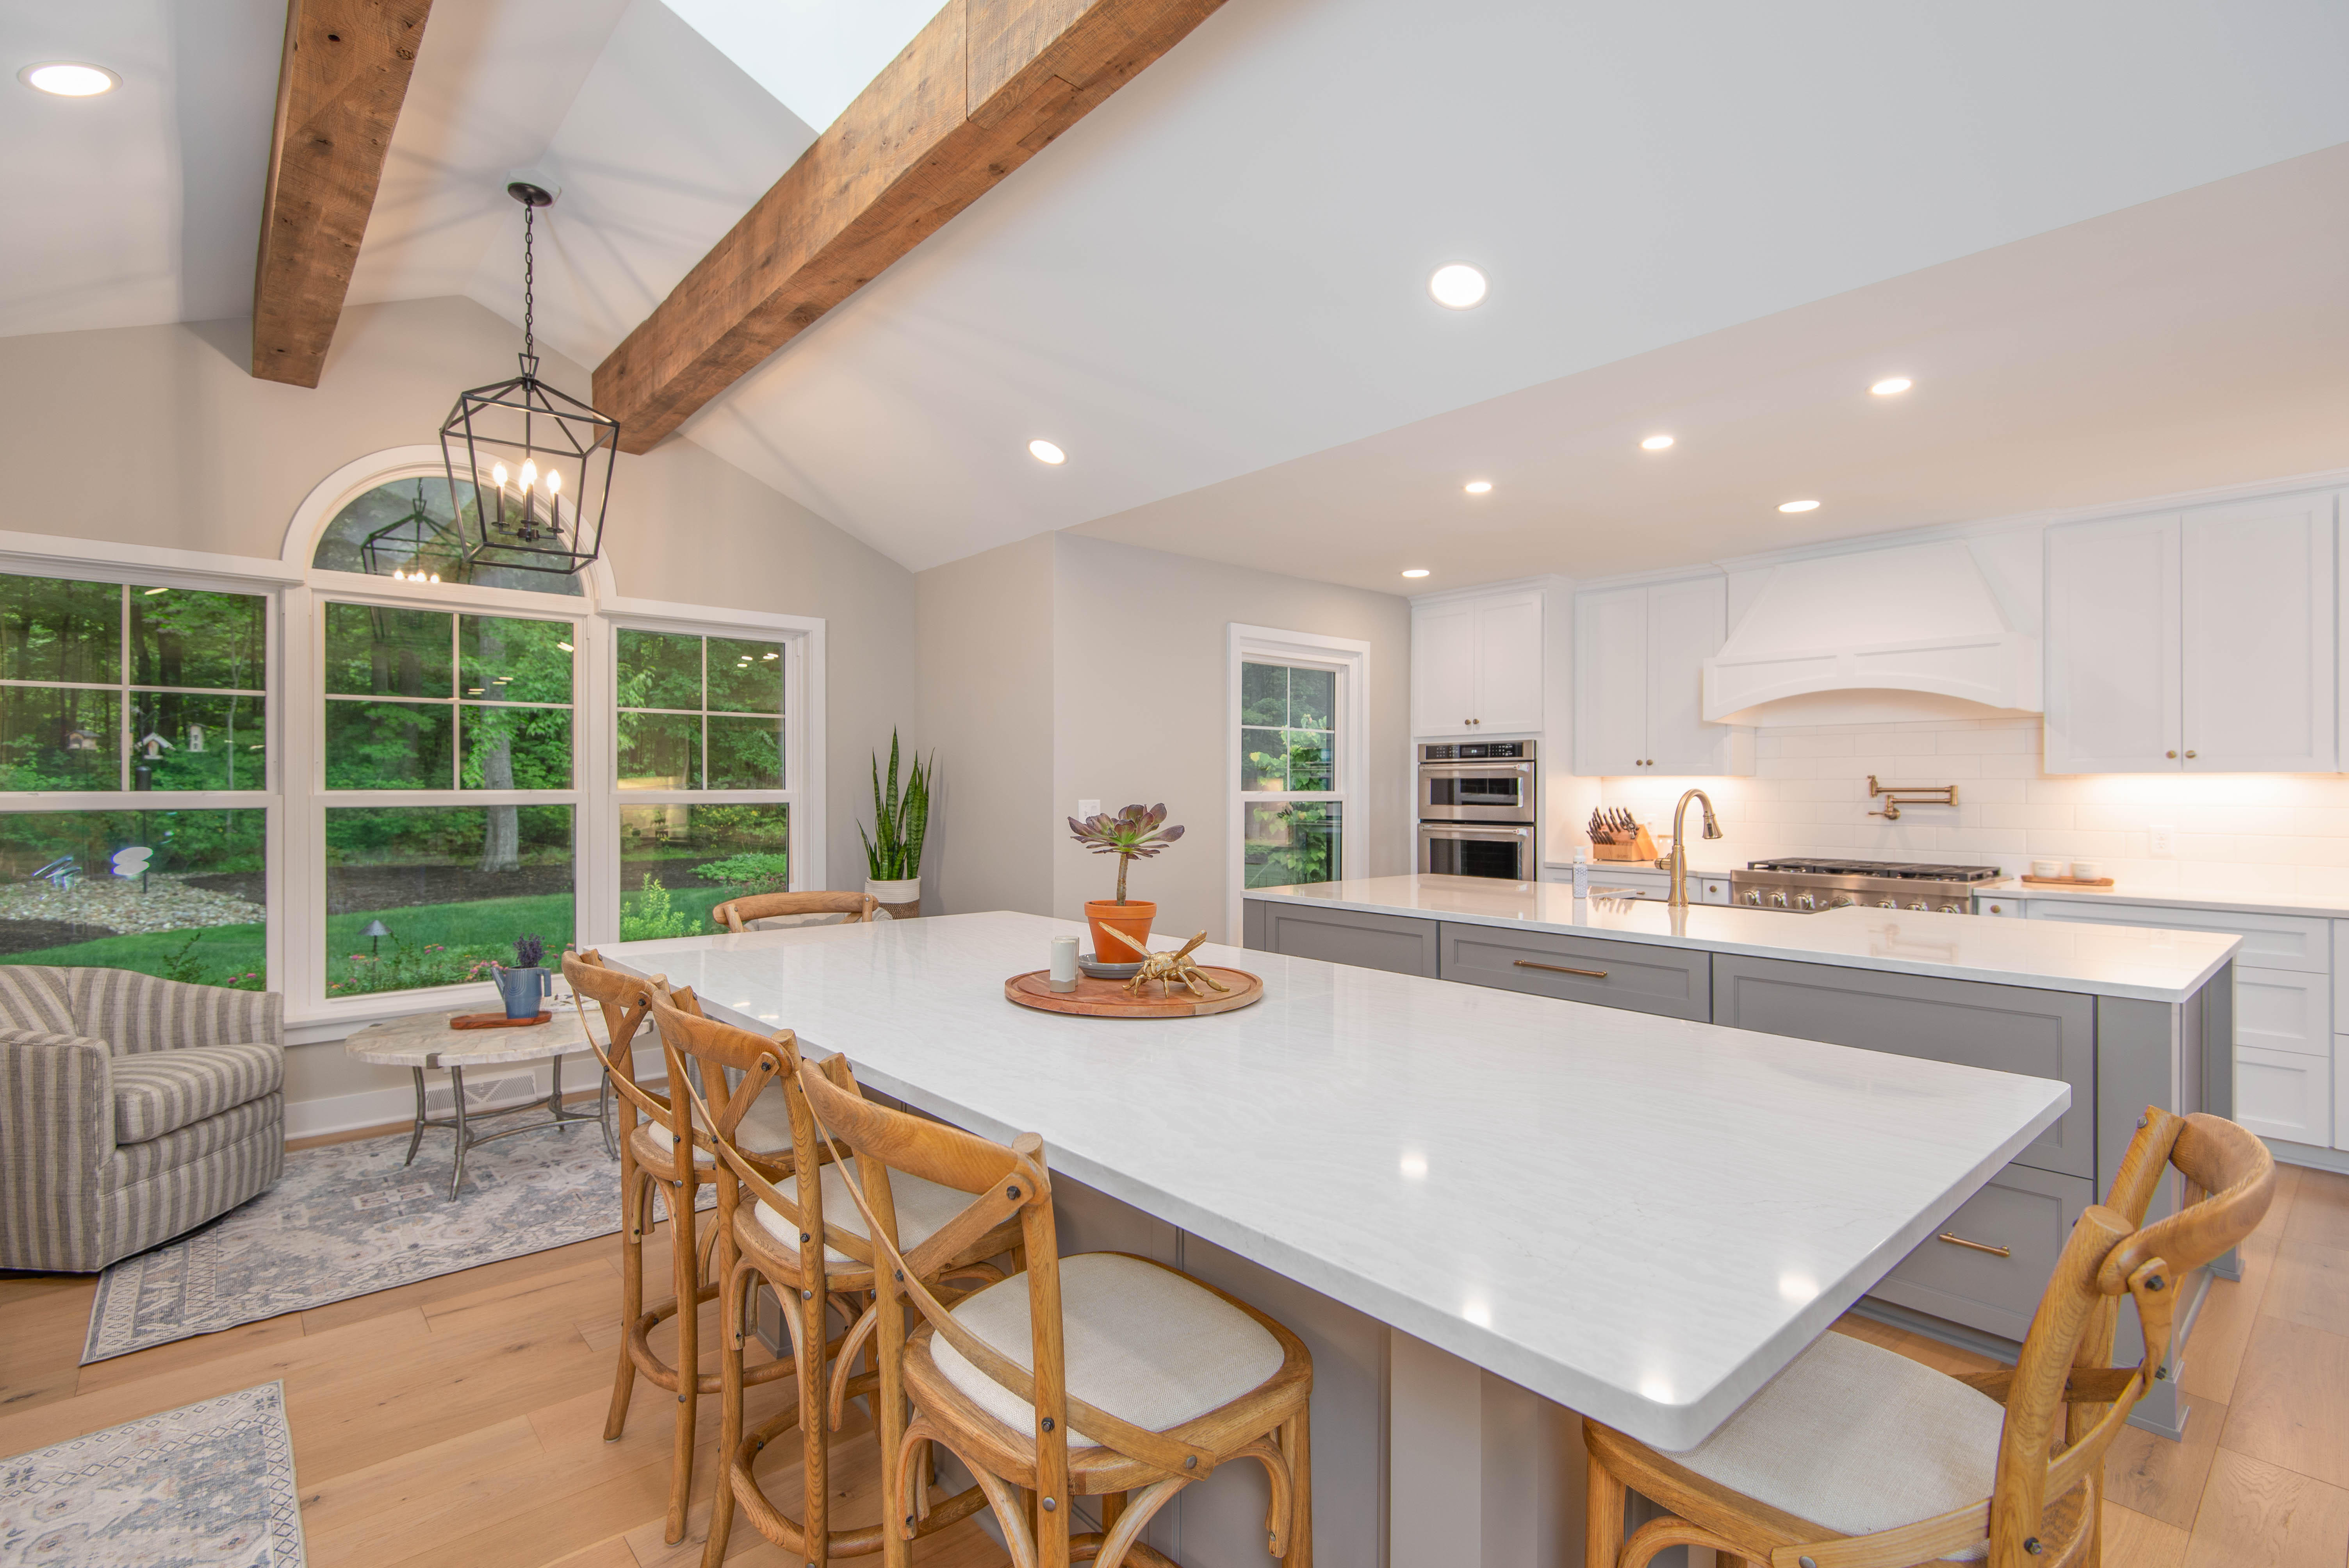 Kitchen Remodel with Double Island